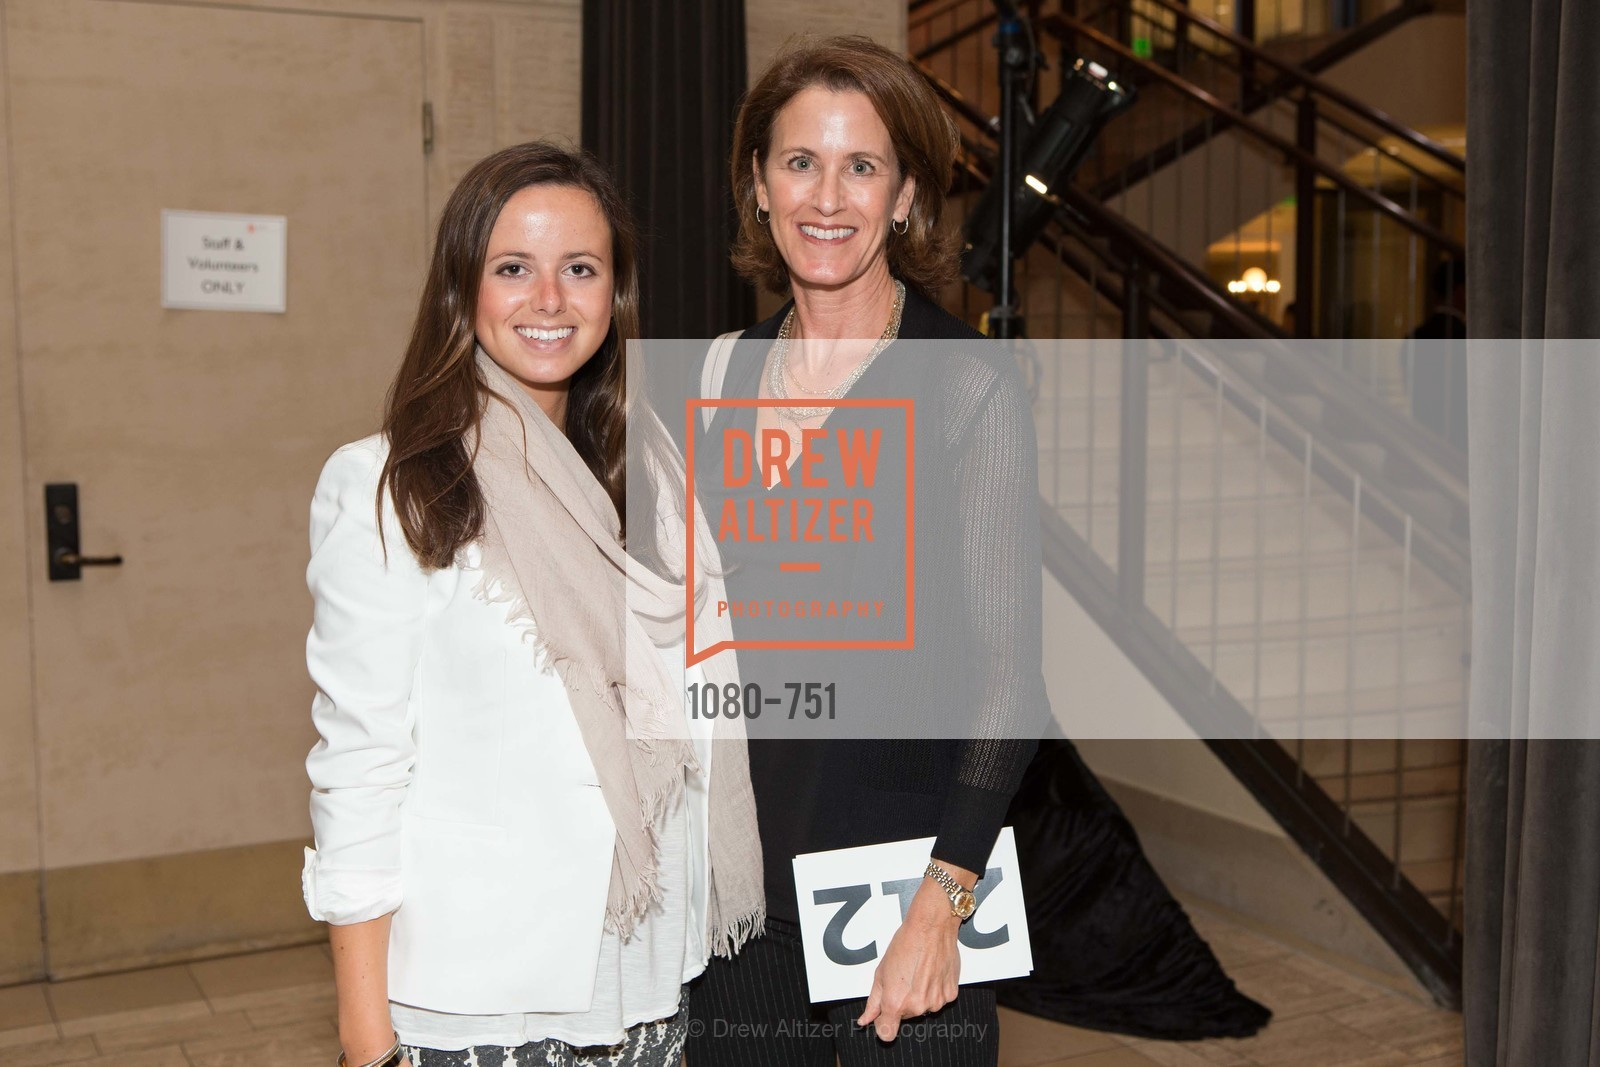 Avery Hale, Liz Hale, CENTER FOR ENVIRONMENTAL HEALTH (CEH) 2015 Gala, US, May 28th, 2015,Drew Altizer, Drew Altizer Photography, full-service agency, private events, San Francisco photographer, photographer california